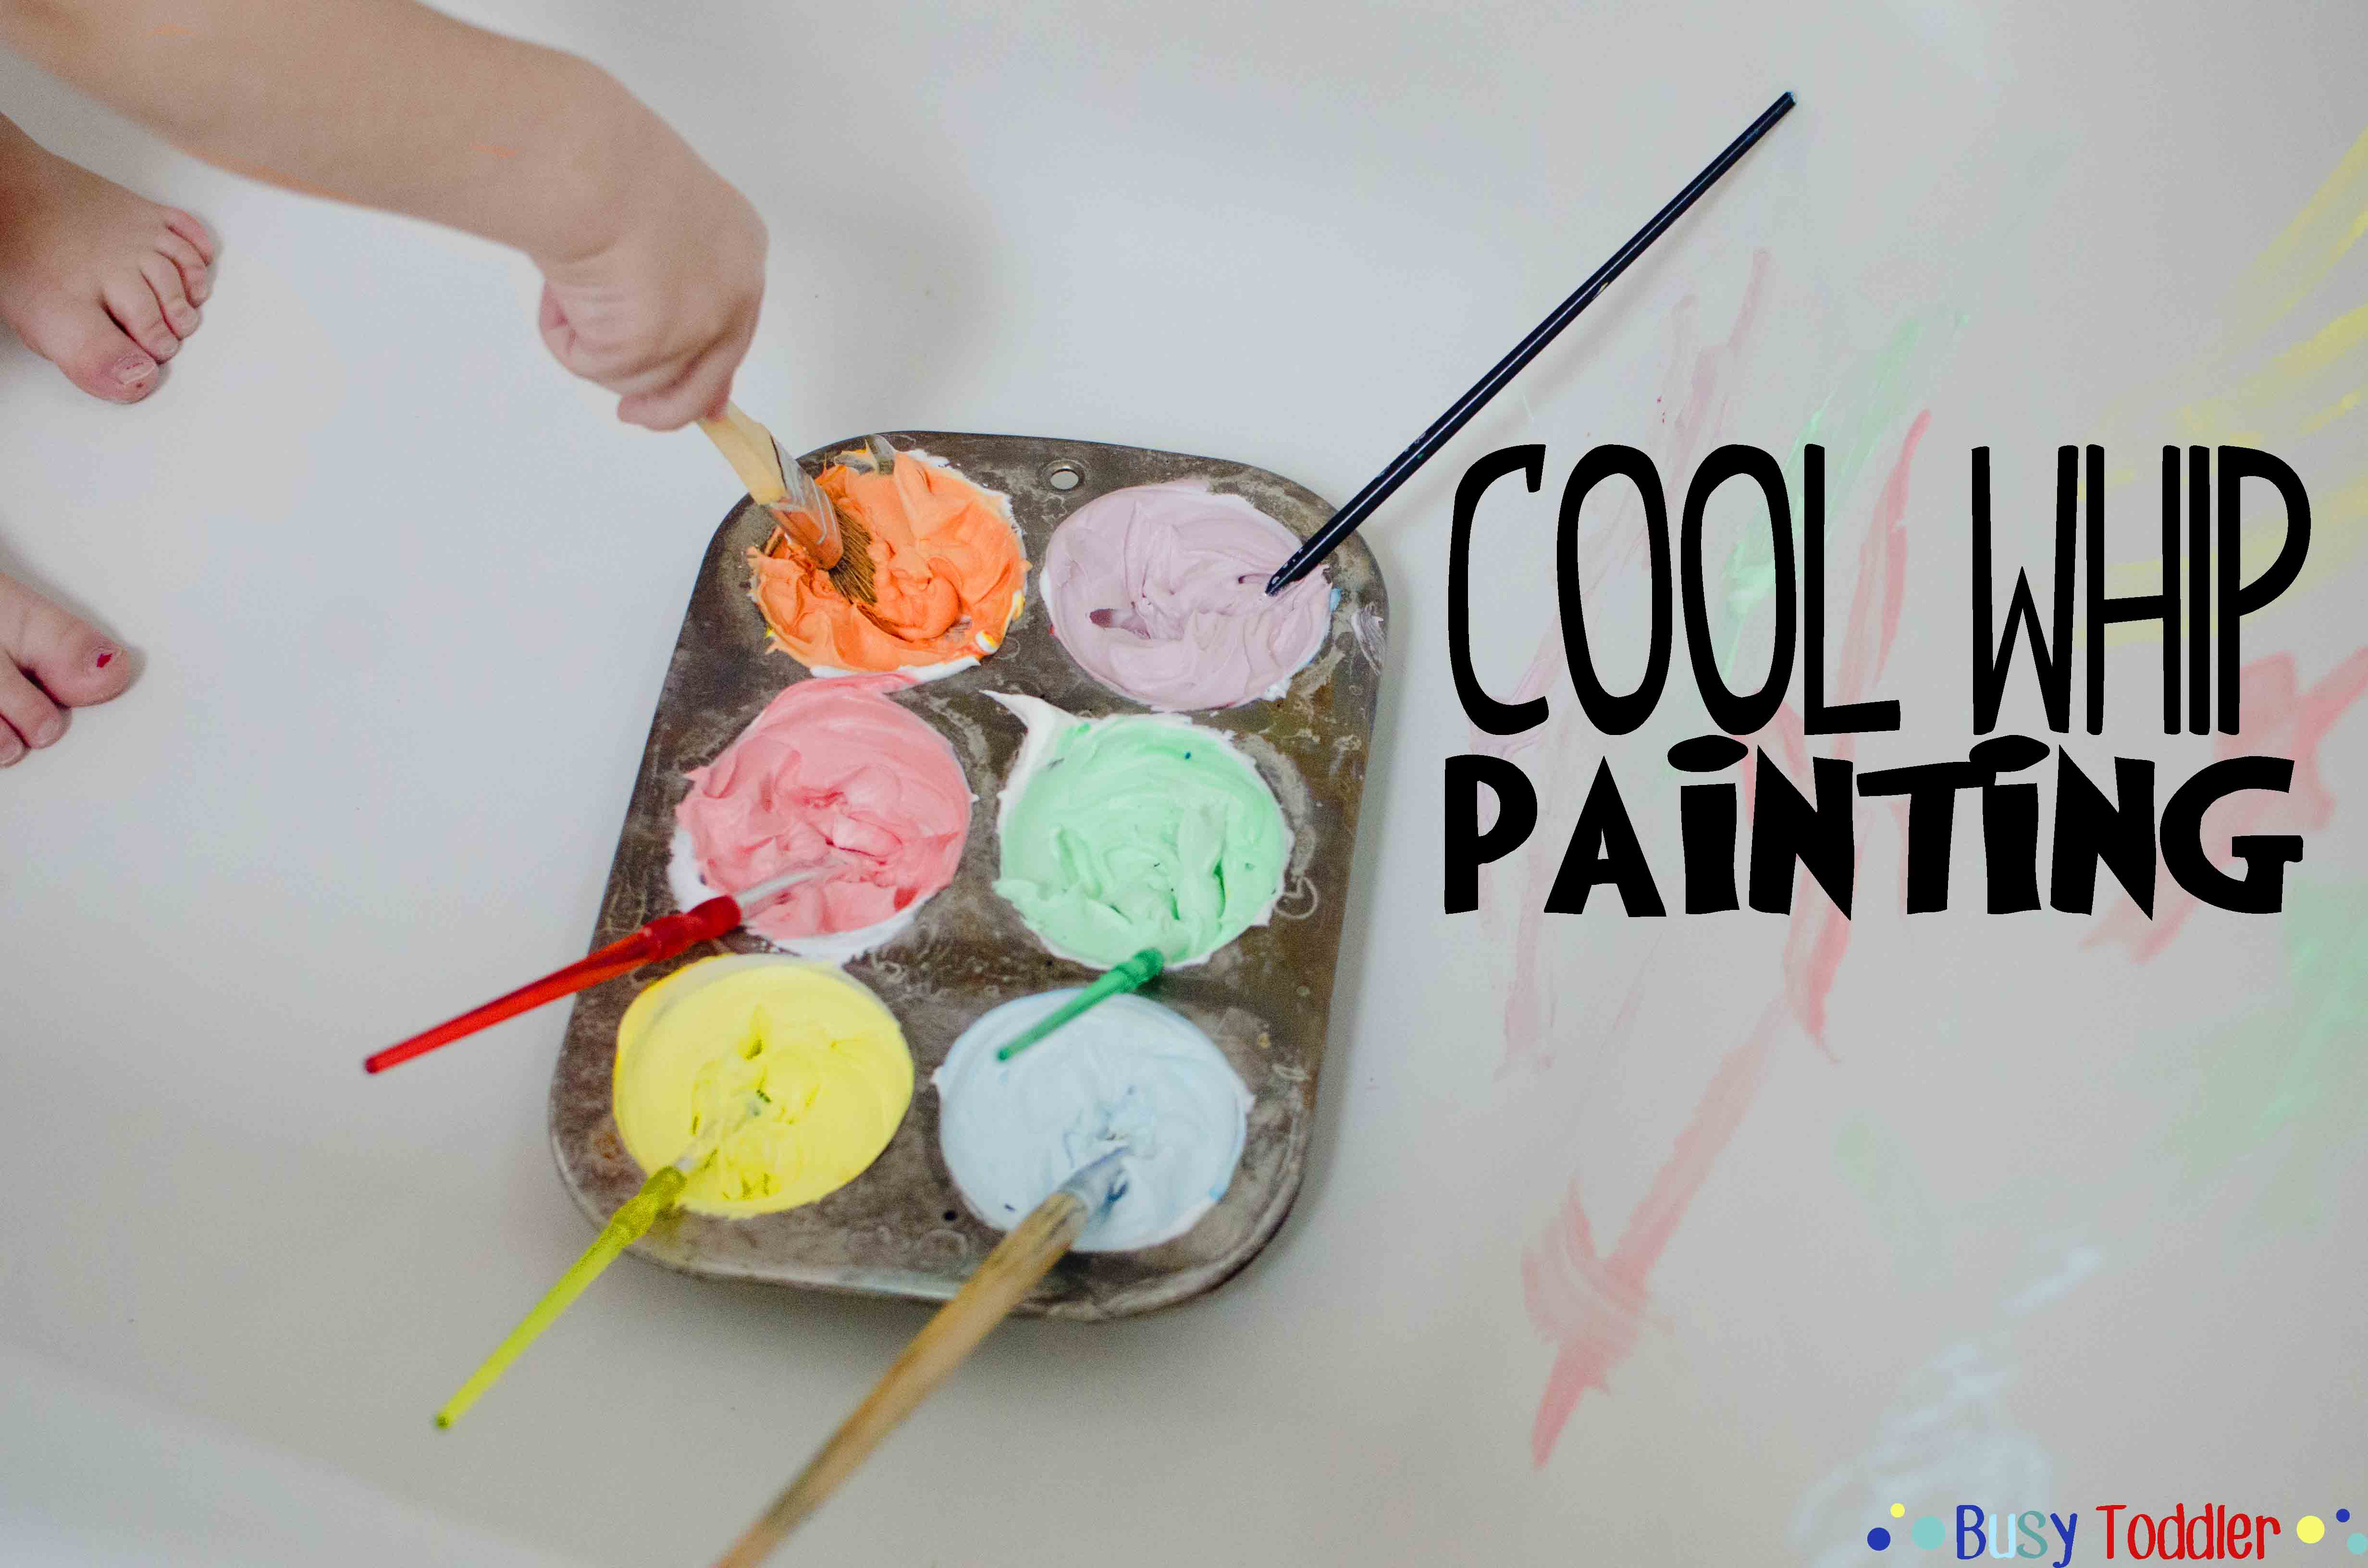 Cool Whip Painting